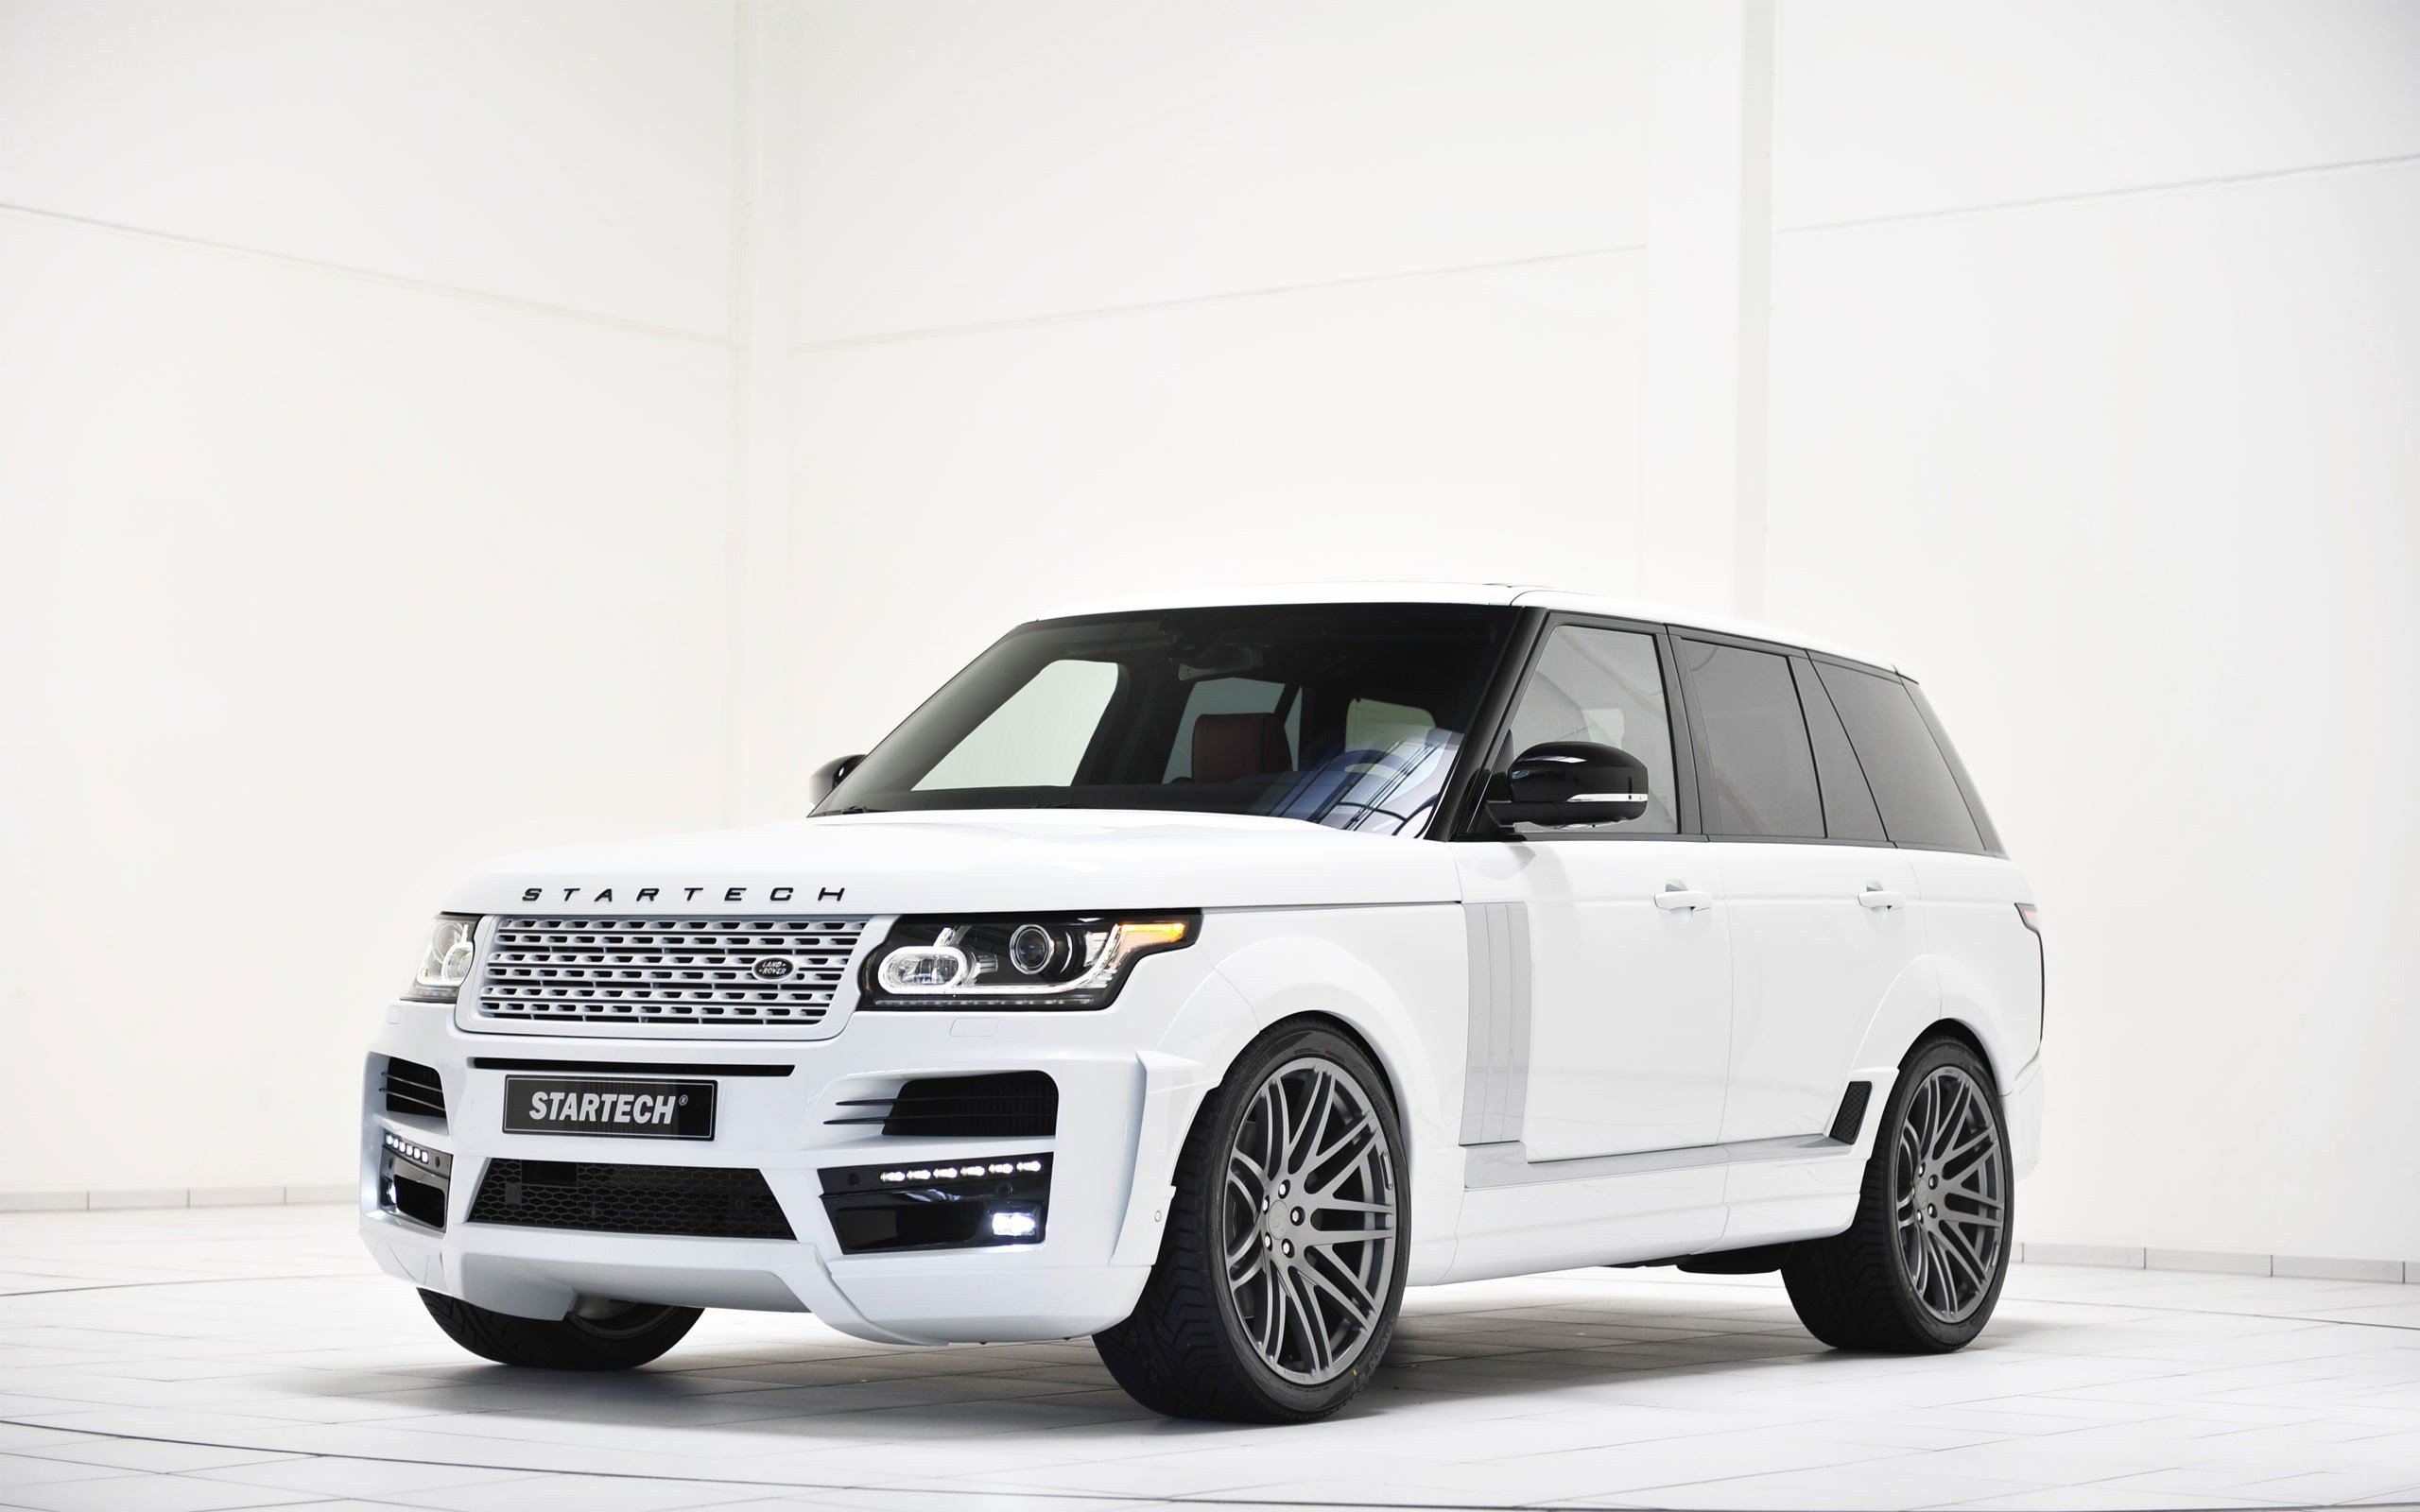 Latest 2014 Range Rover By Startech Wallpaper Hd Car Wallpapers Free Download